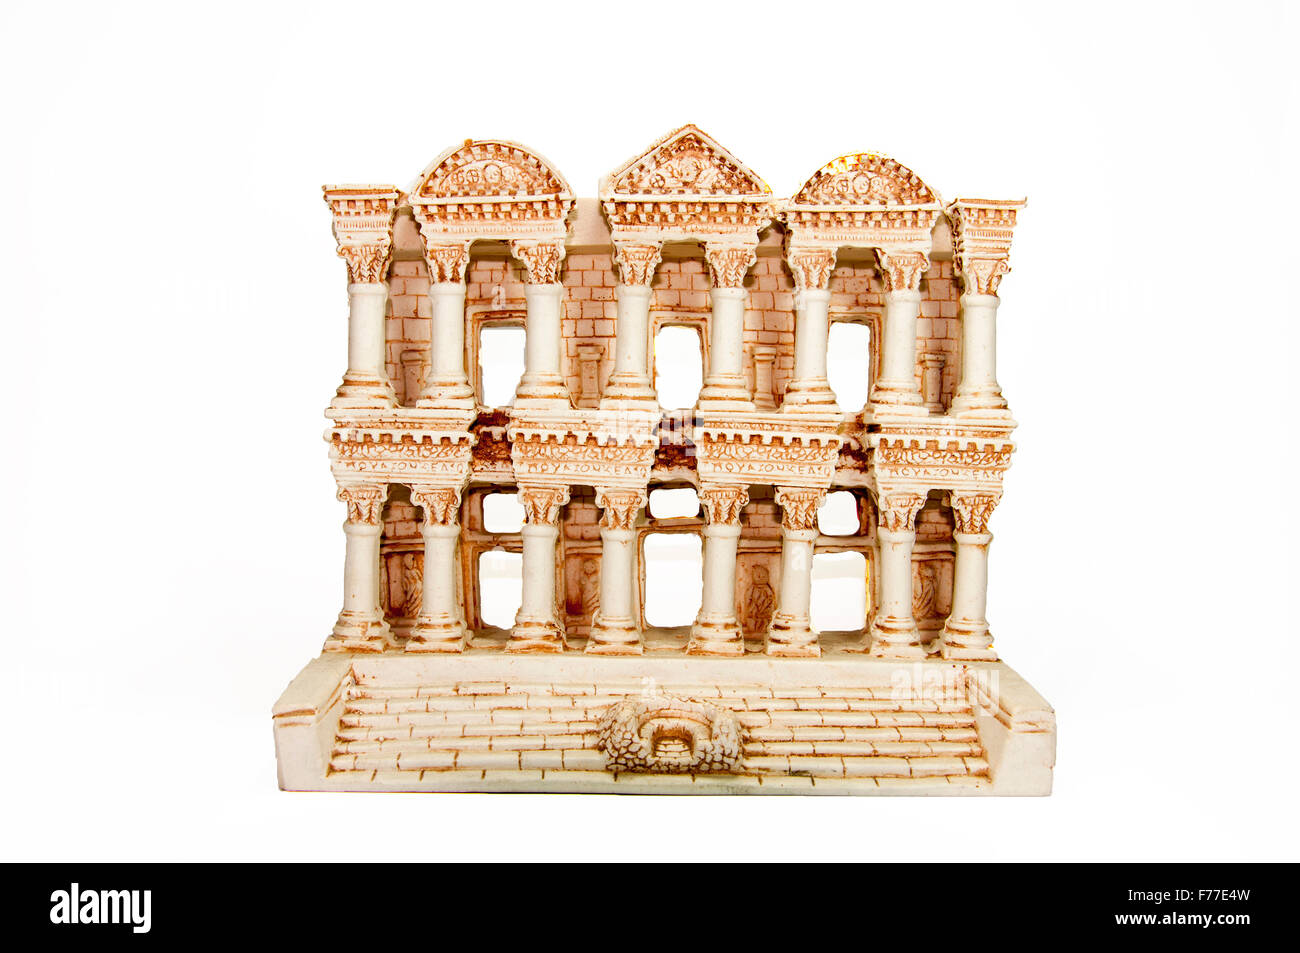 Miniature Model of Celsus Library - Stock Image